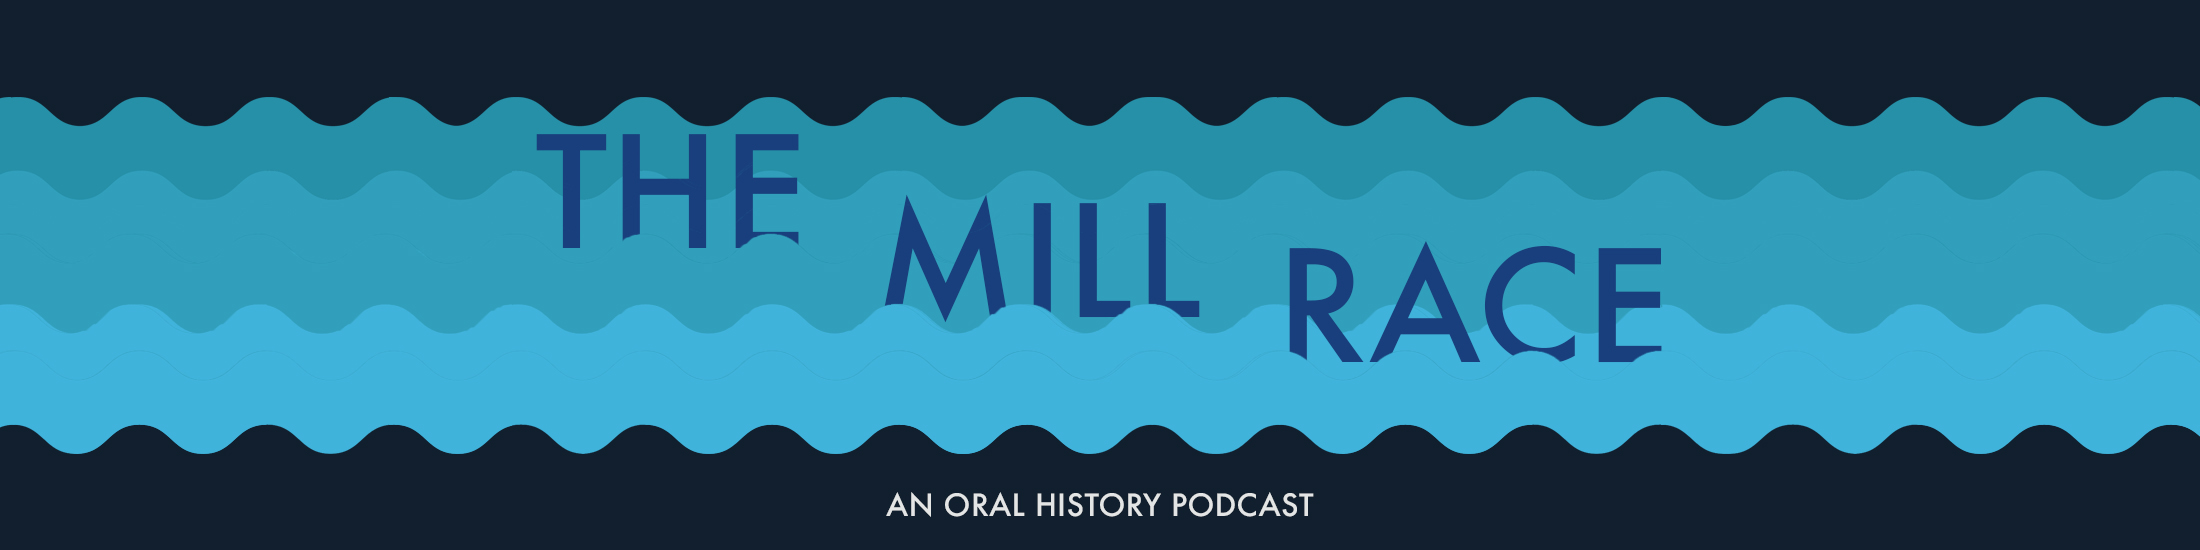 The Millrace banner image